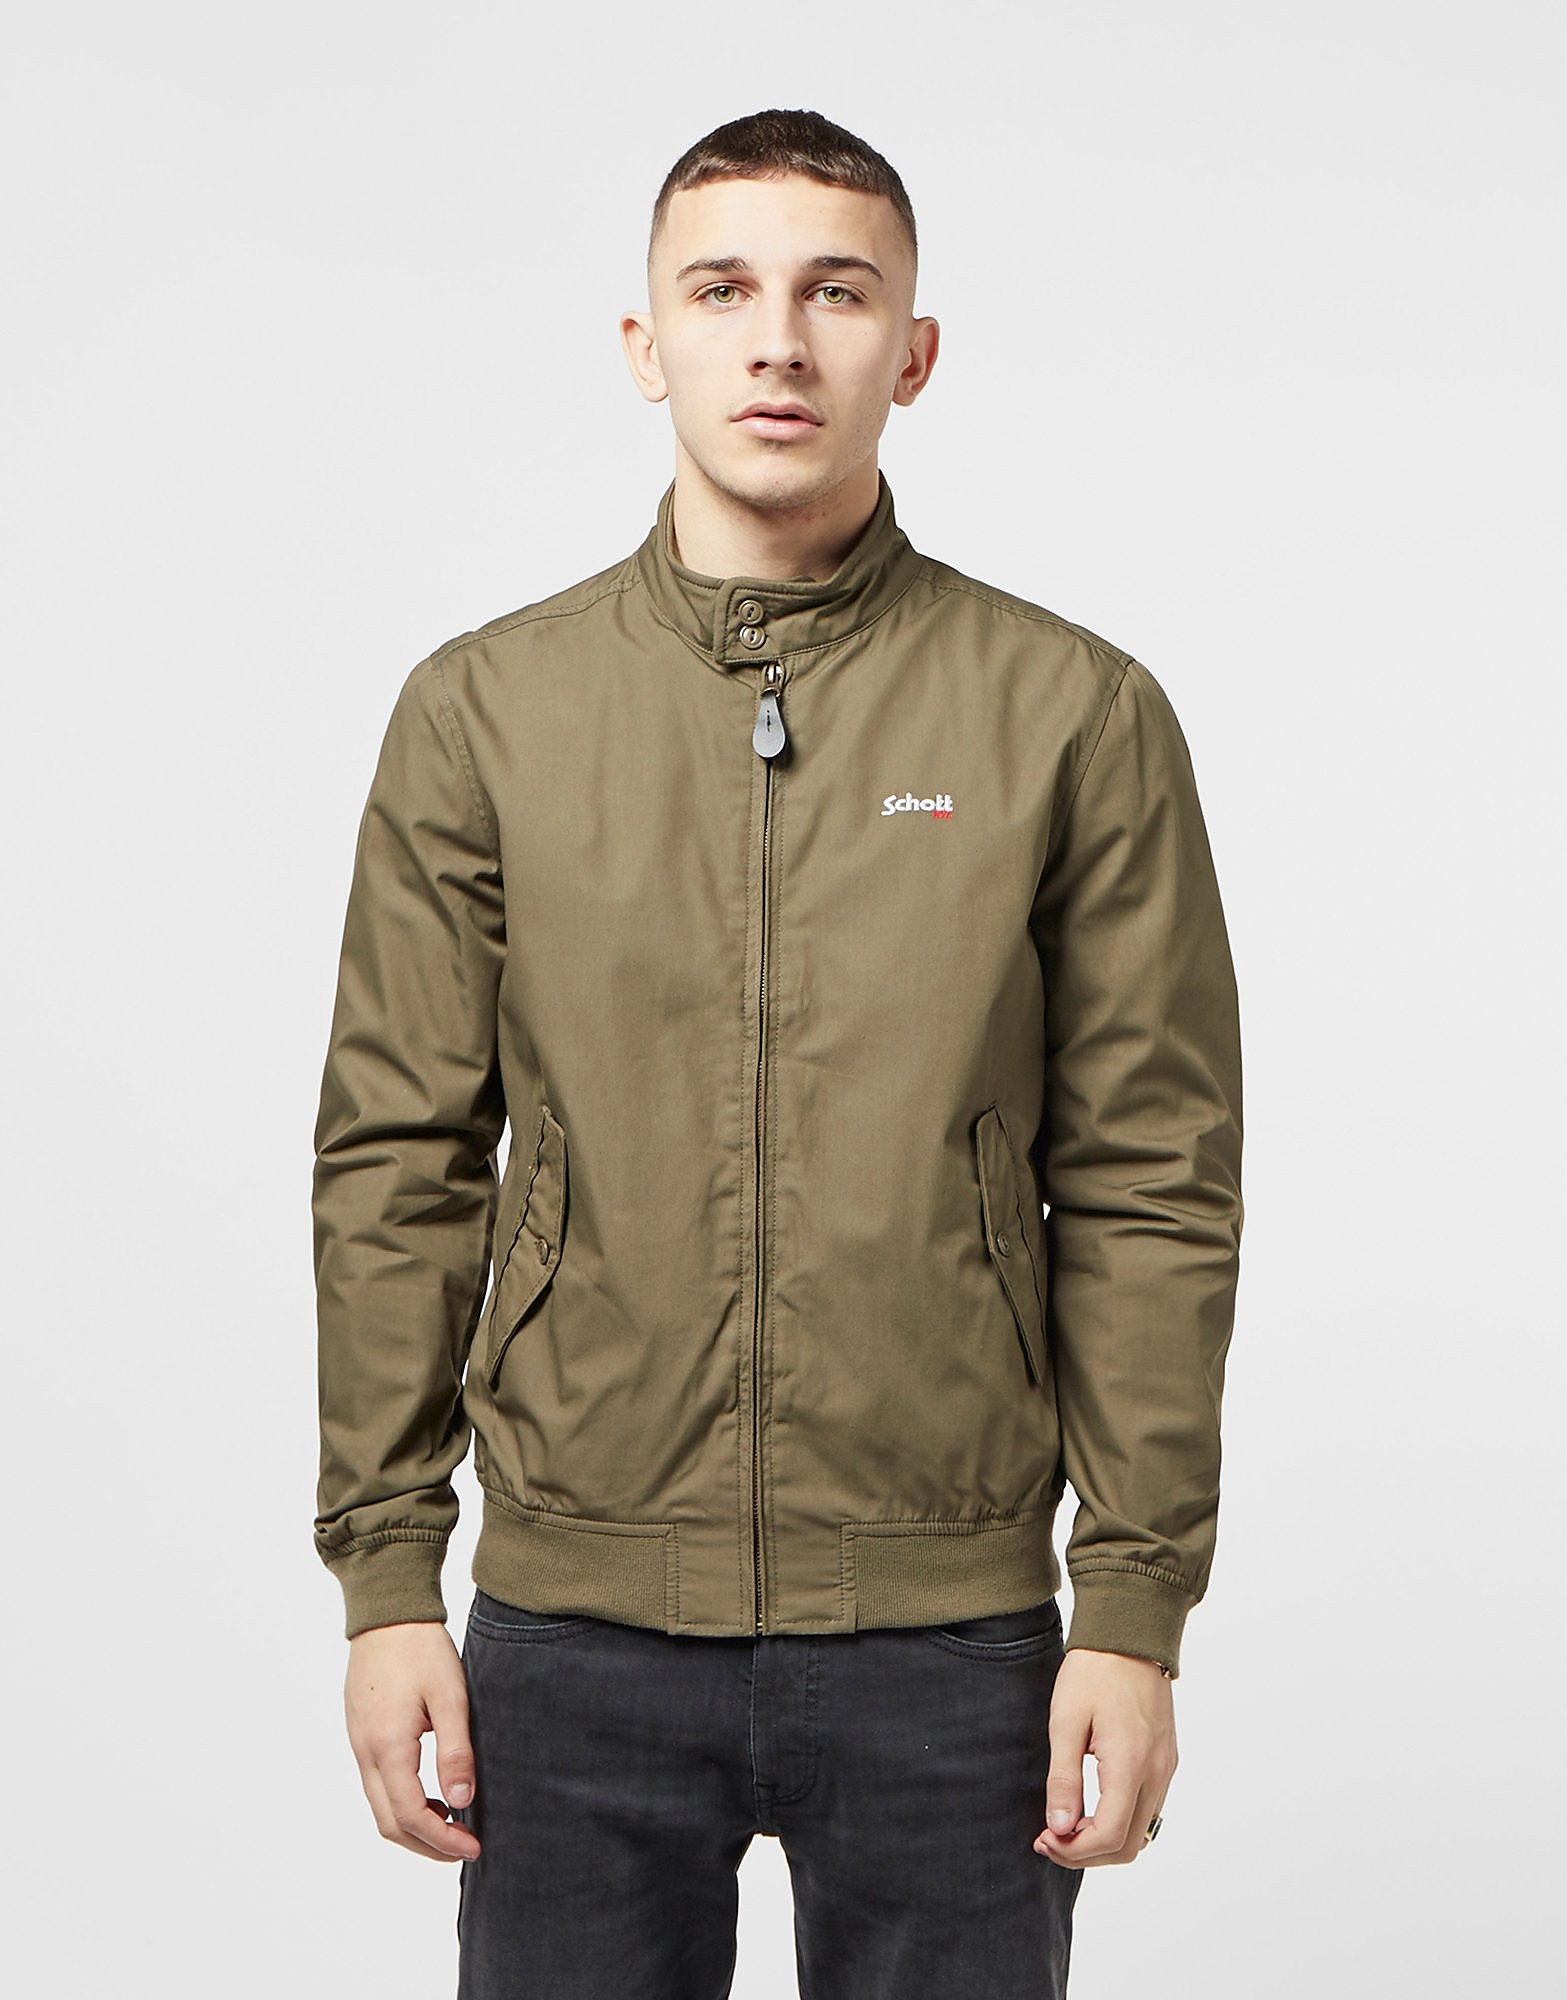 Schott Harrington Lightweight Jacket